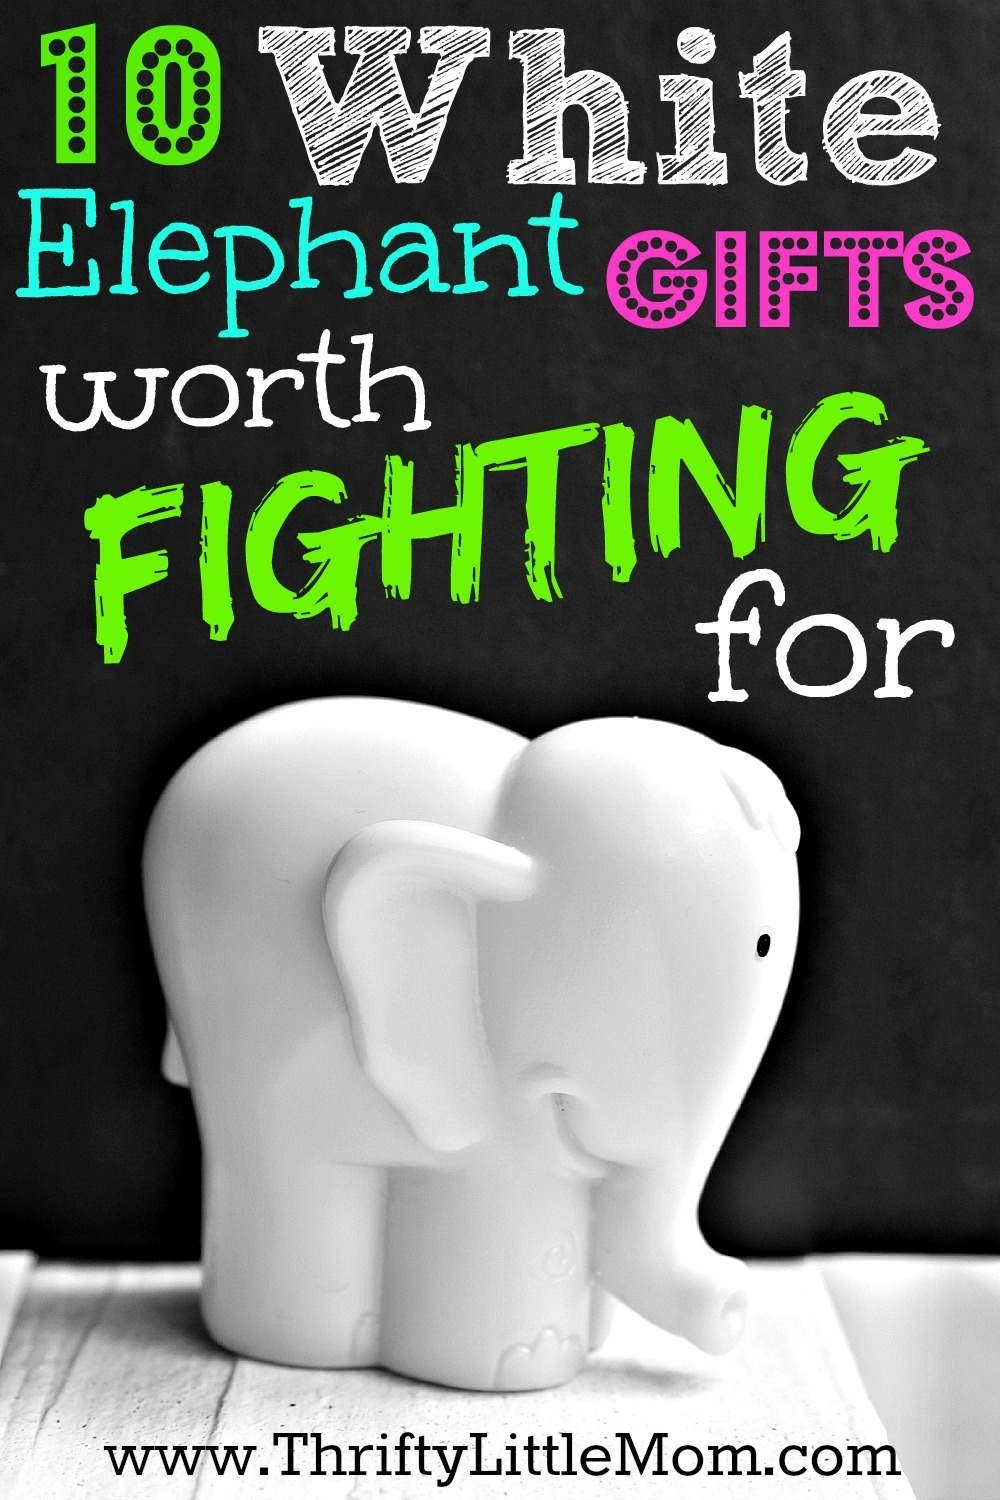 10 Stunning Office Christmas Gift Exchange Ideas white elephant gifts worth fighting for thrifty little mom 2